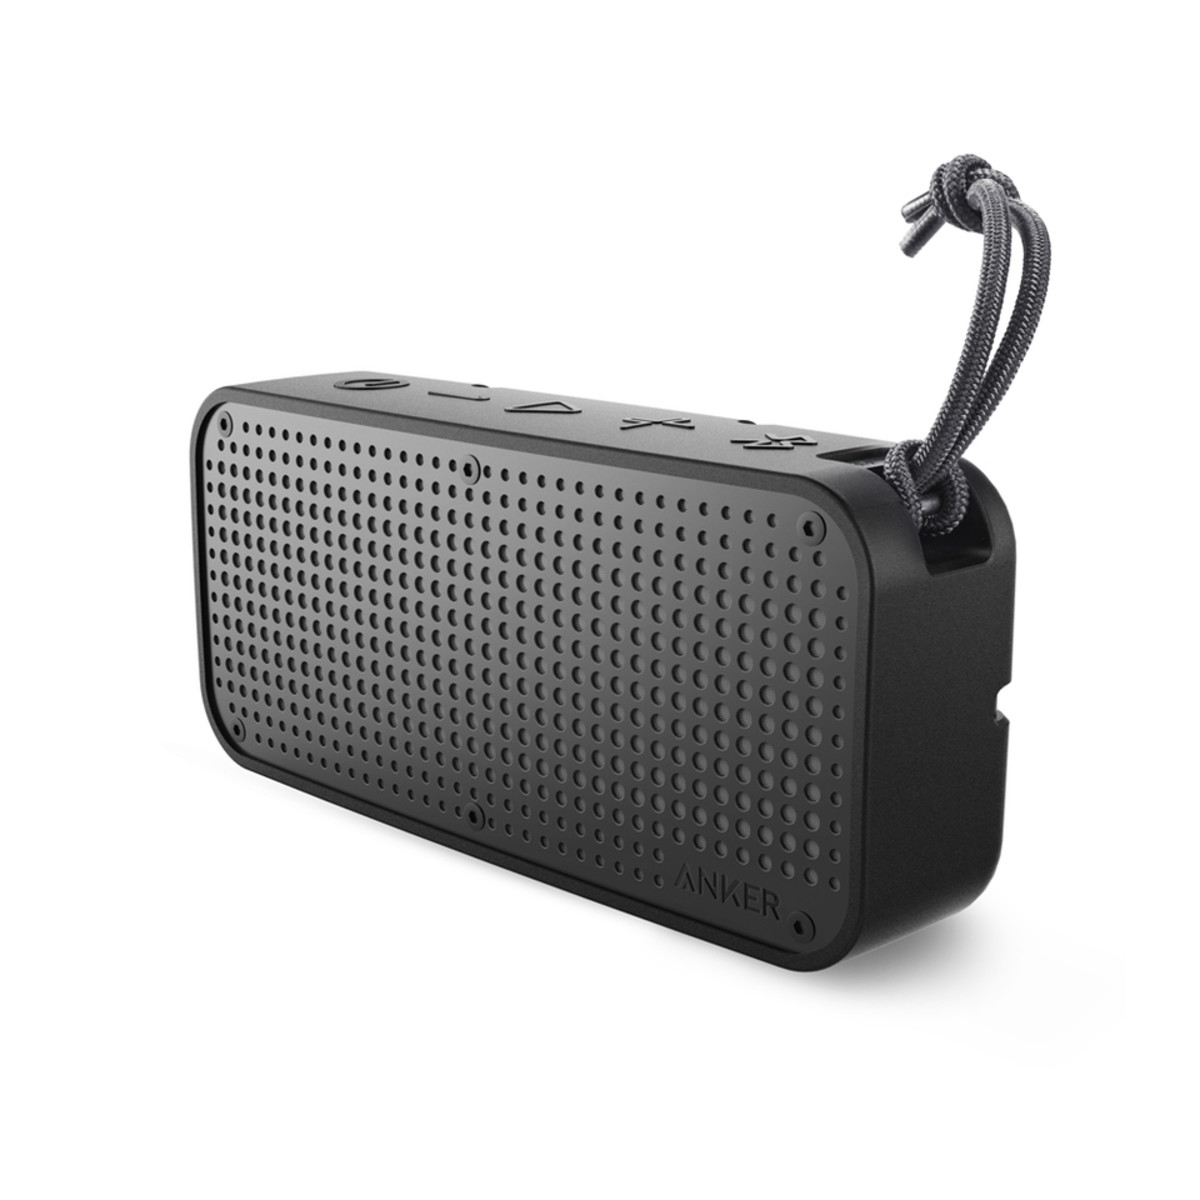 The Anker SoundCore SportXL features Bluetooth 4.1 and has 8-watt stereo speakers.